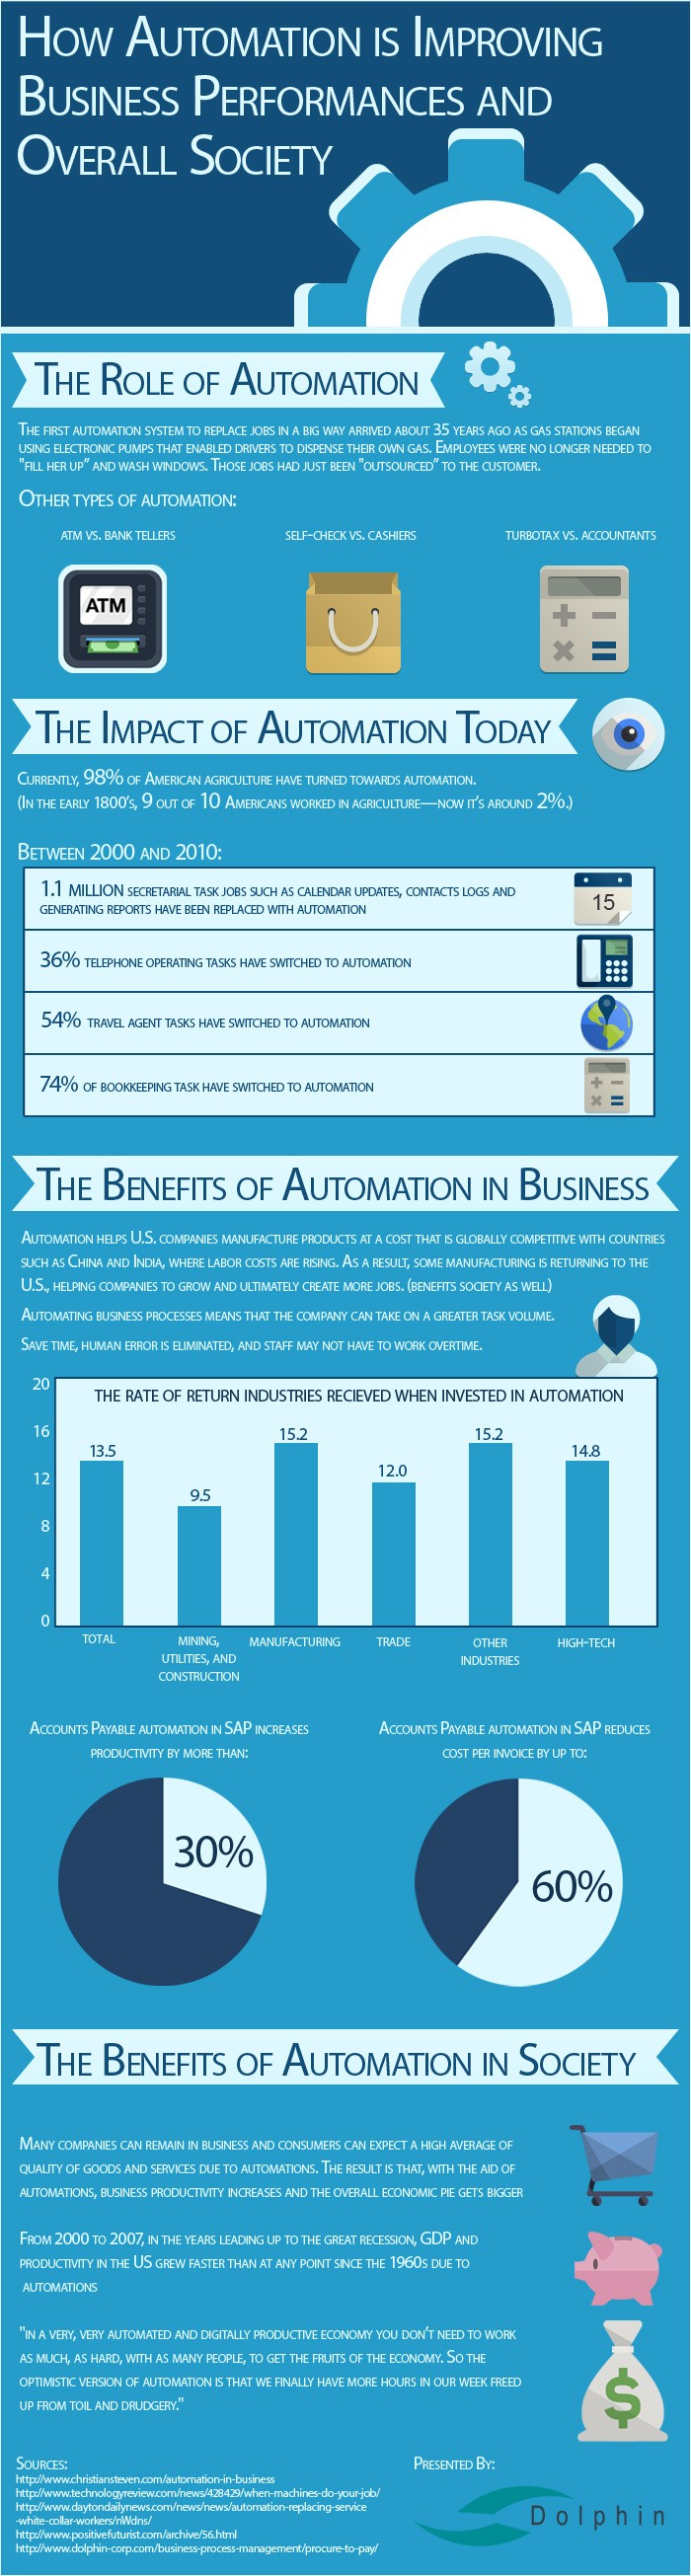 how-automation-improves-business-performance-and-overall-society_52b88fa793379_w700